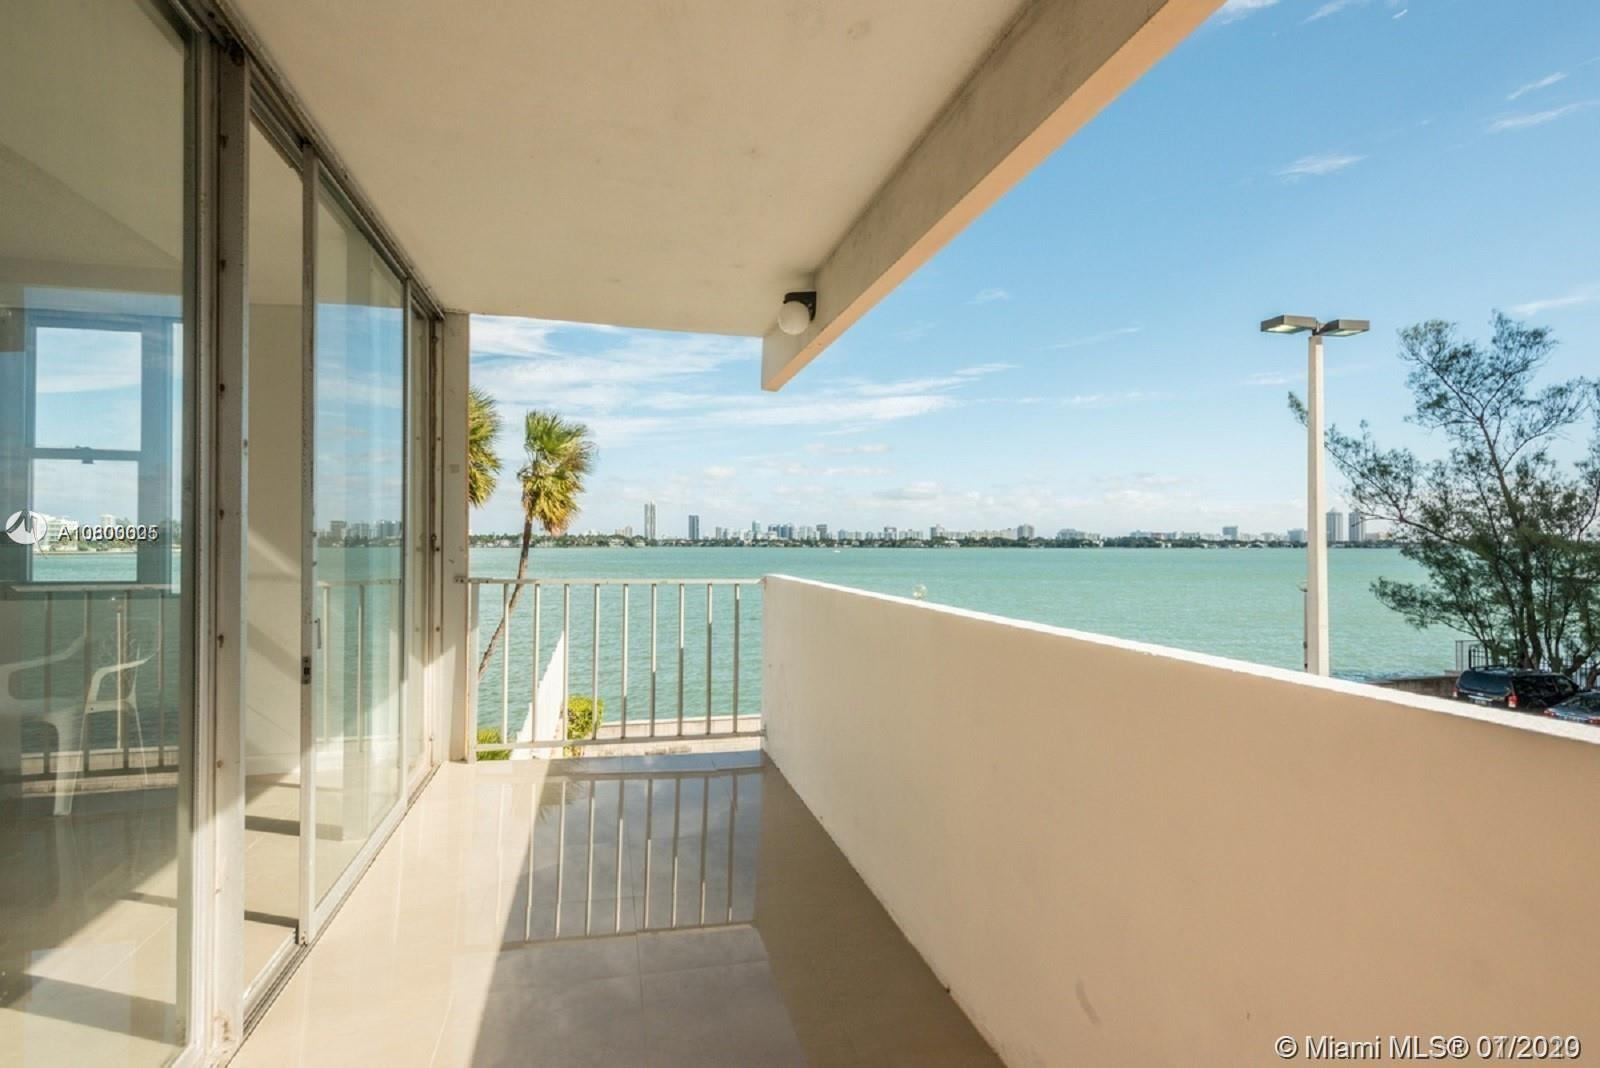 !!WONDERFULLY REMODELED CORNER UNIT APARTMENT WITH BEAUTIFUL VIEWS TO THE MIAMI BAY AND MIAMI BEACH